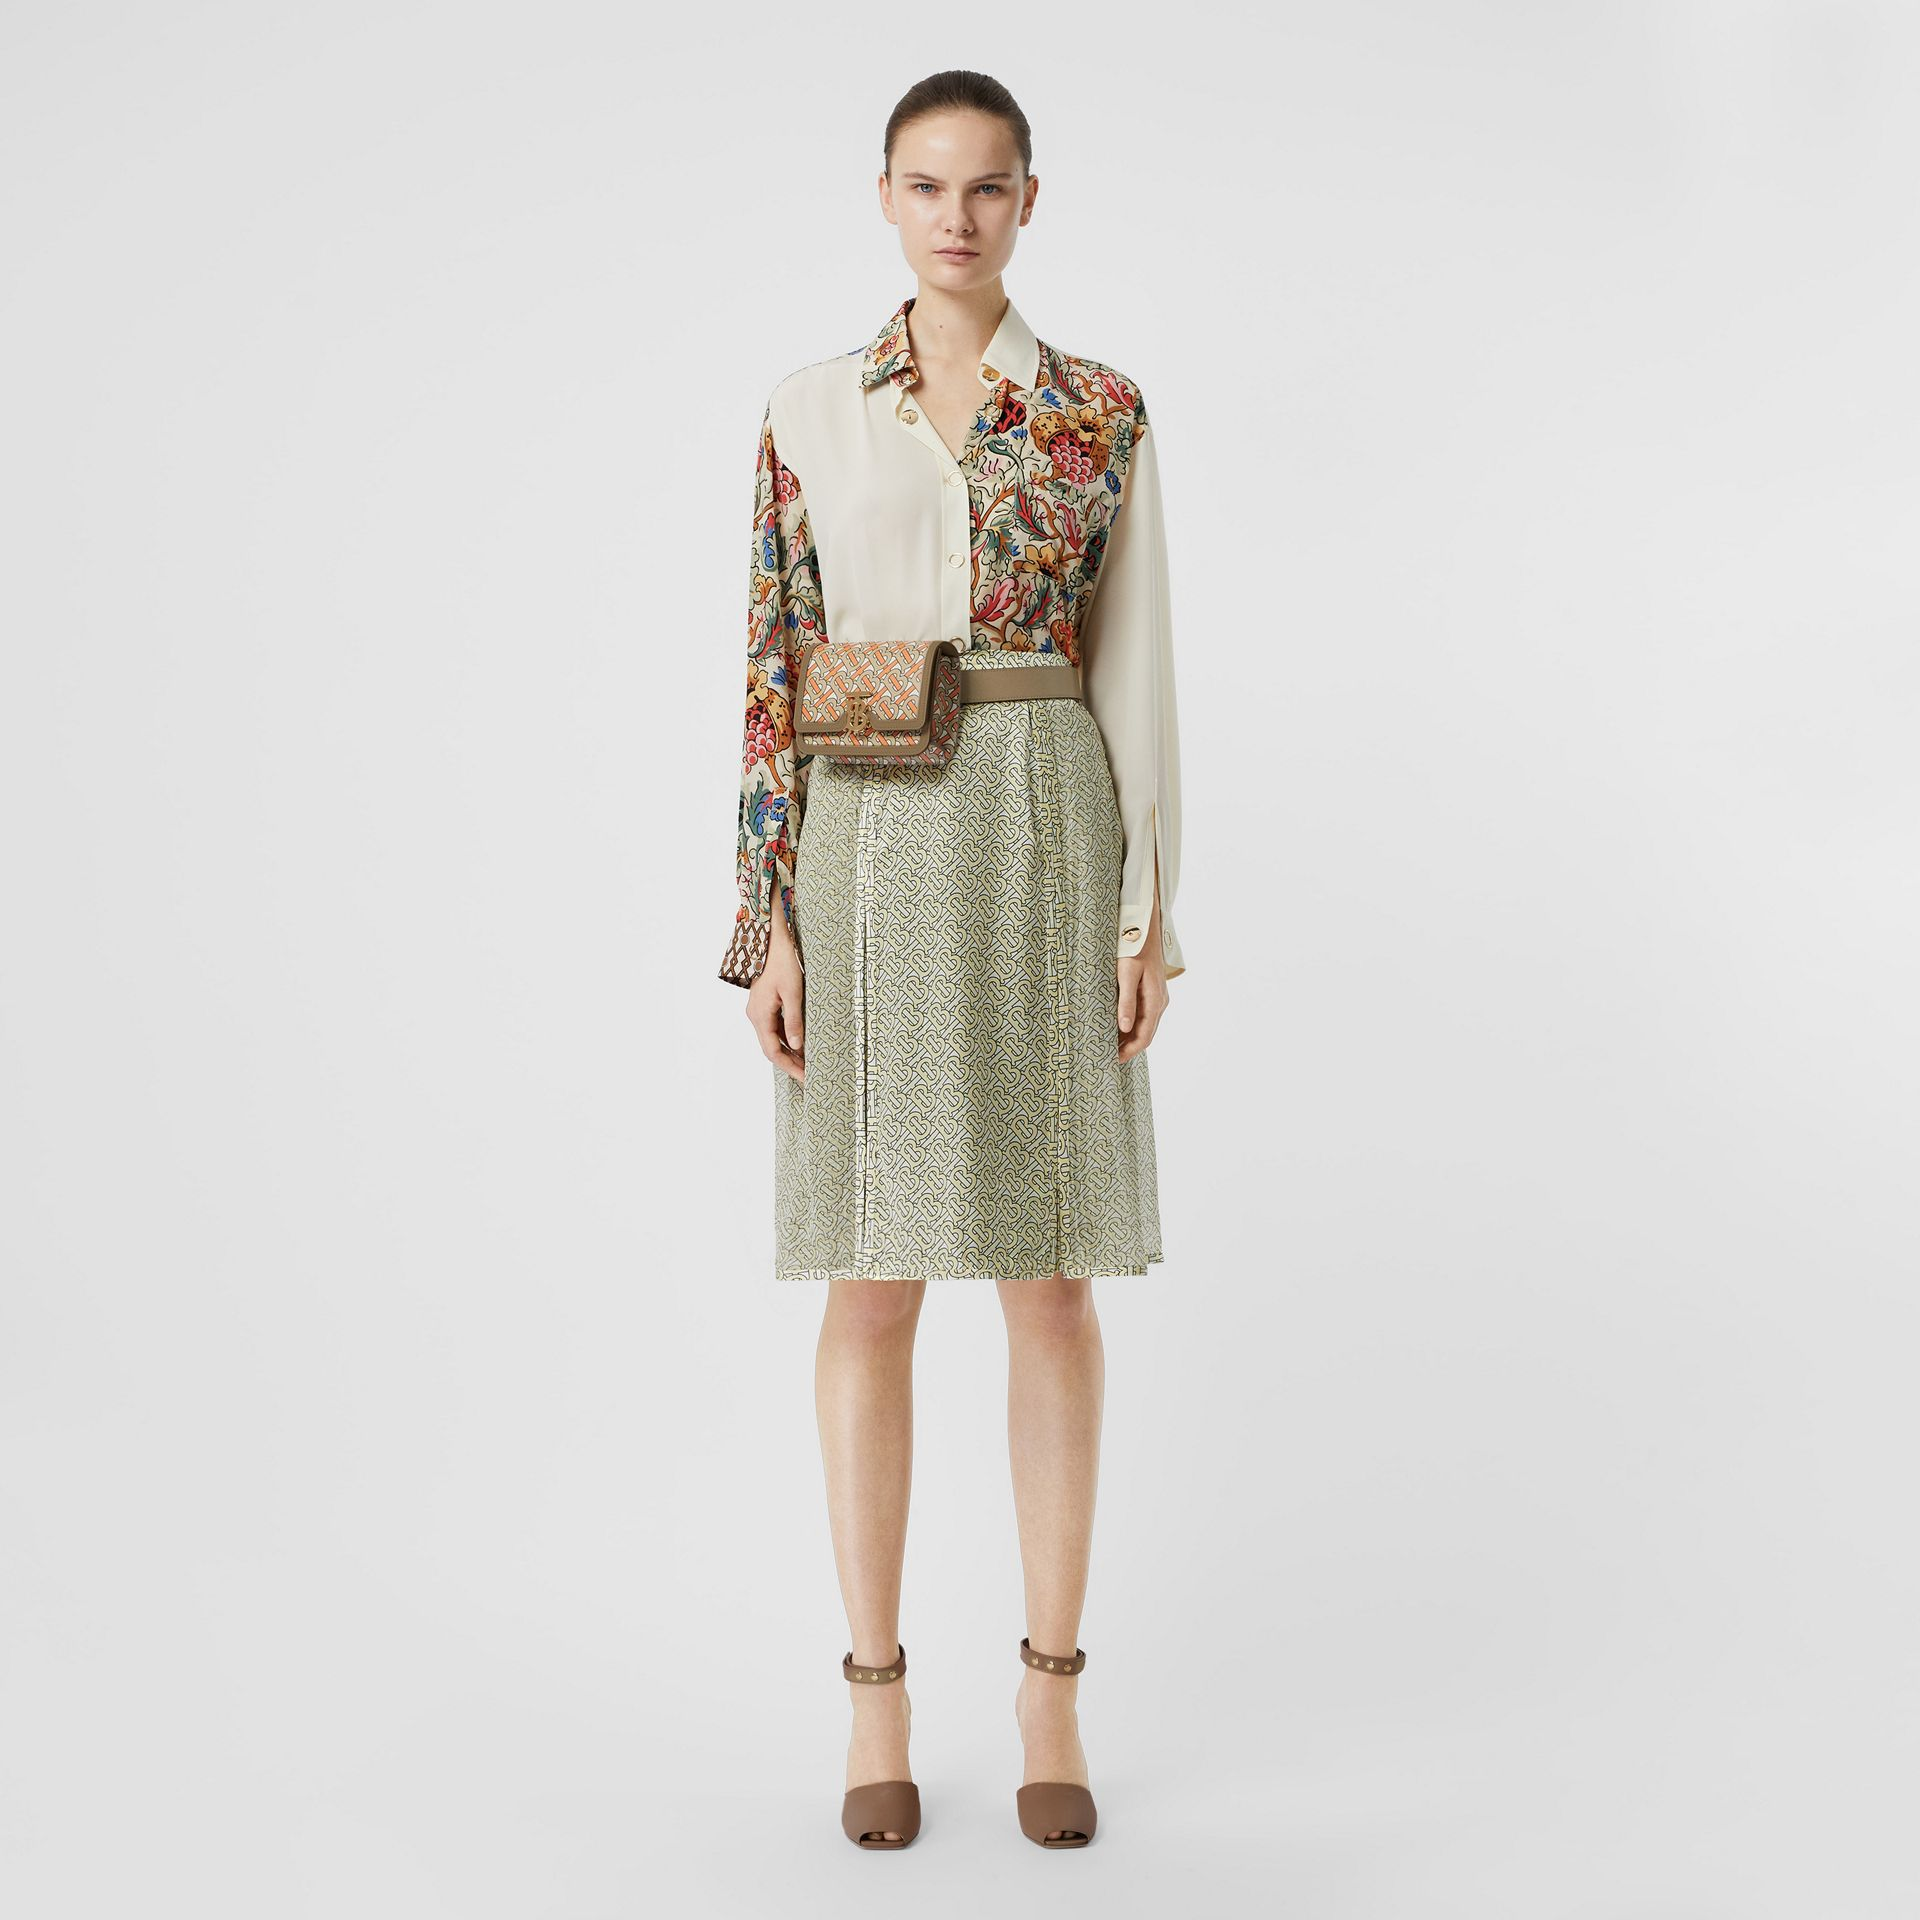 Floral Print Panel Silk Oversized Shirt in Vanilla - Women | Burberry Singapore - gallery image 5